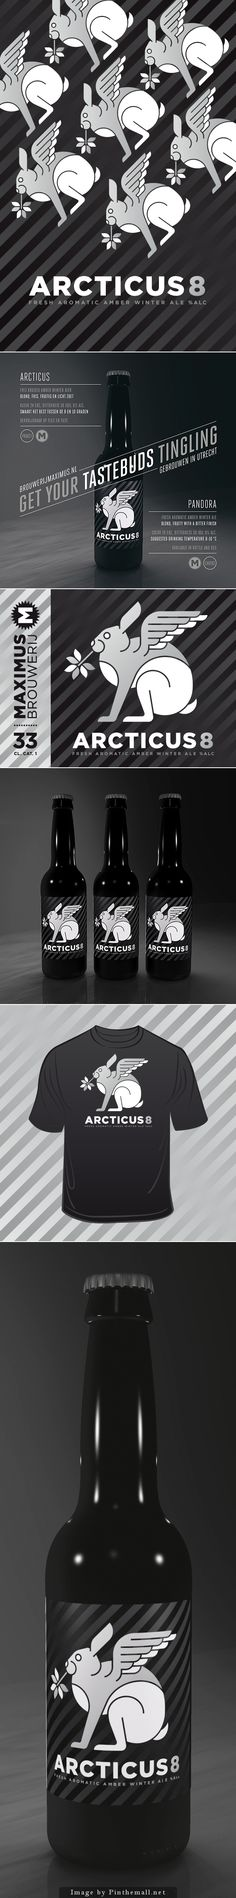 Fun Winter ale packaging concept : ) curated by Packaging Diva PD created via https://www.behance.net/gallery/19668203/Arcticus-Winter-Ale-Brouwerij-Maximus?